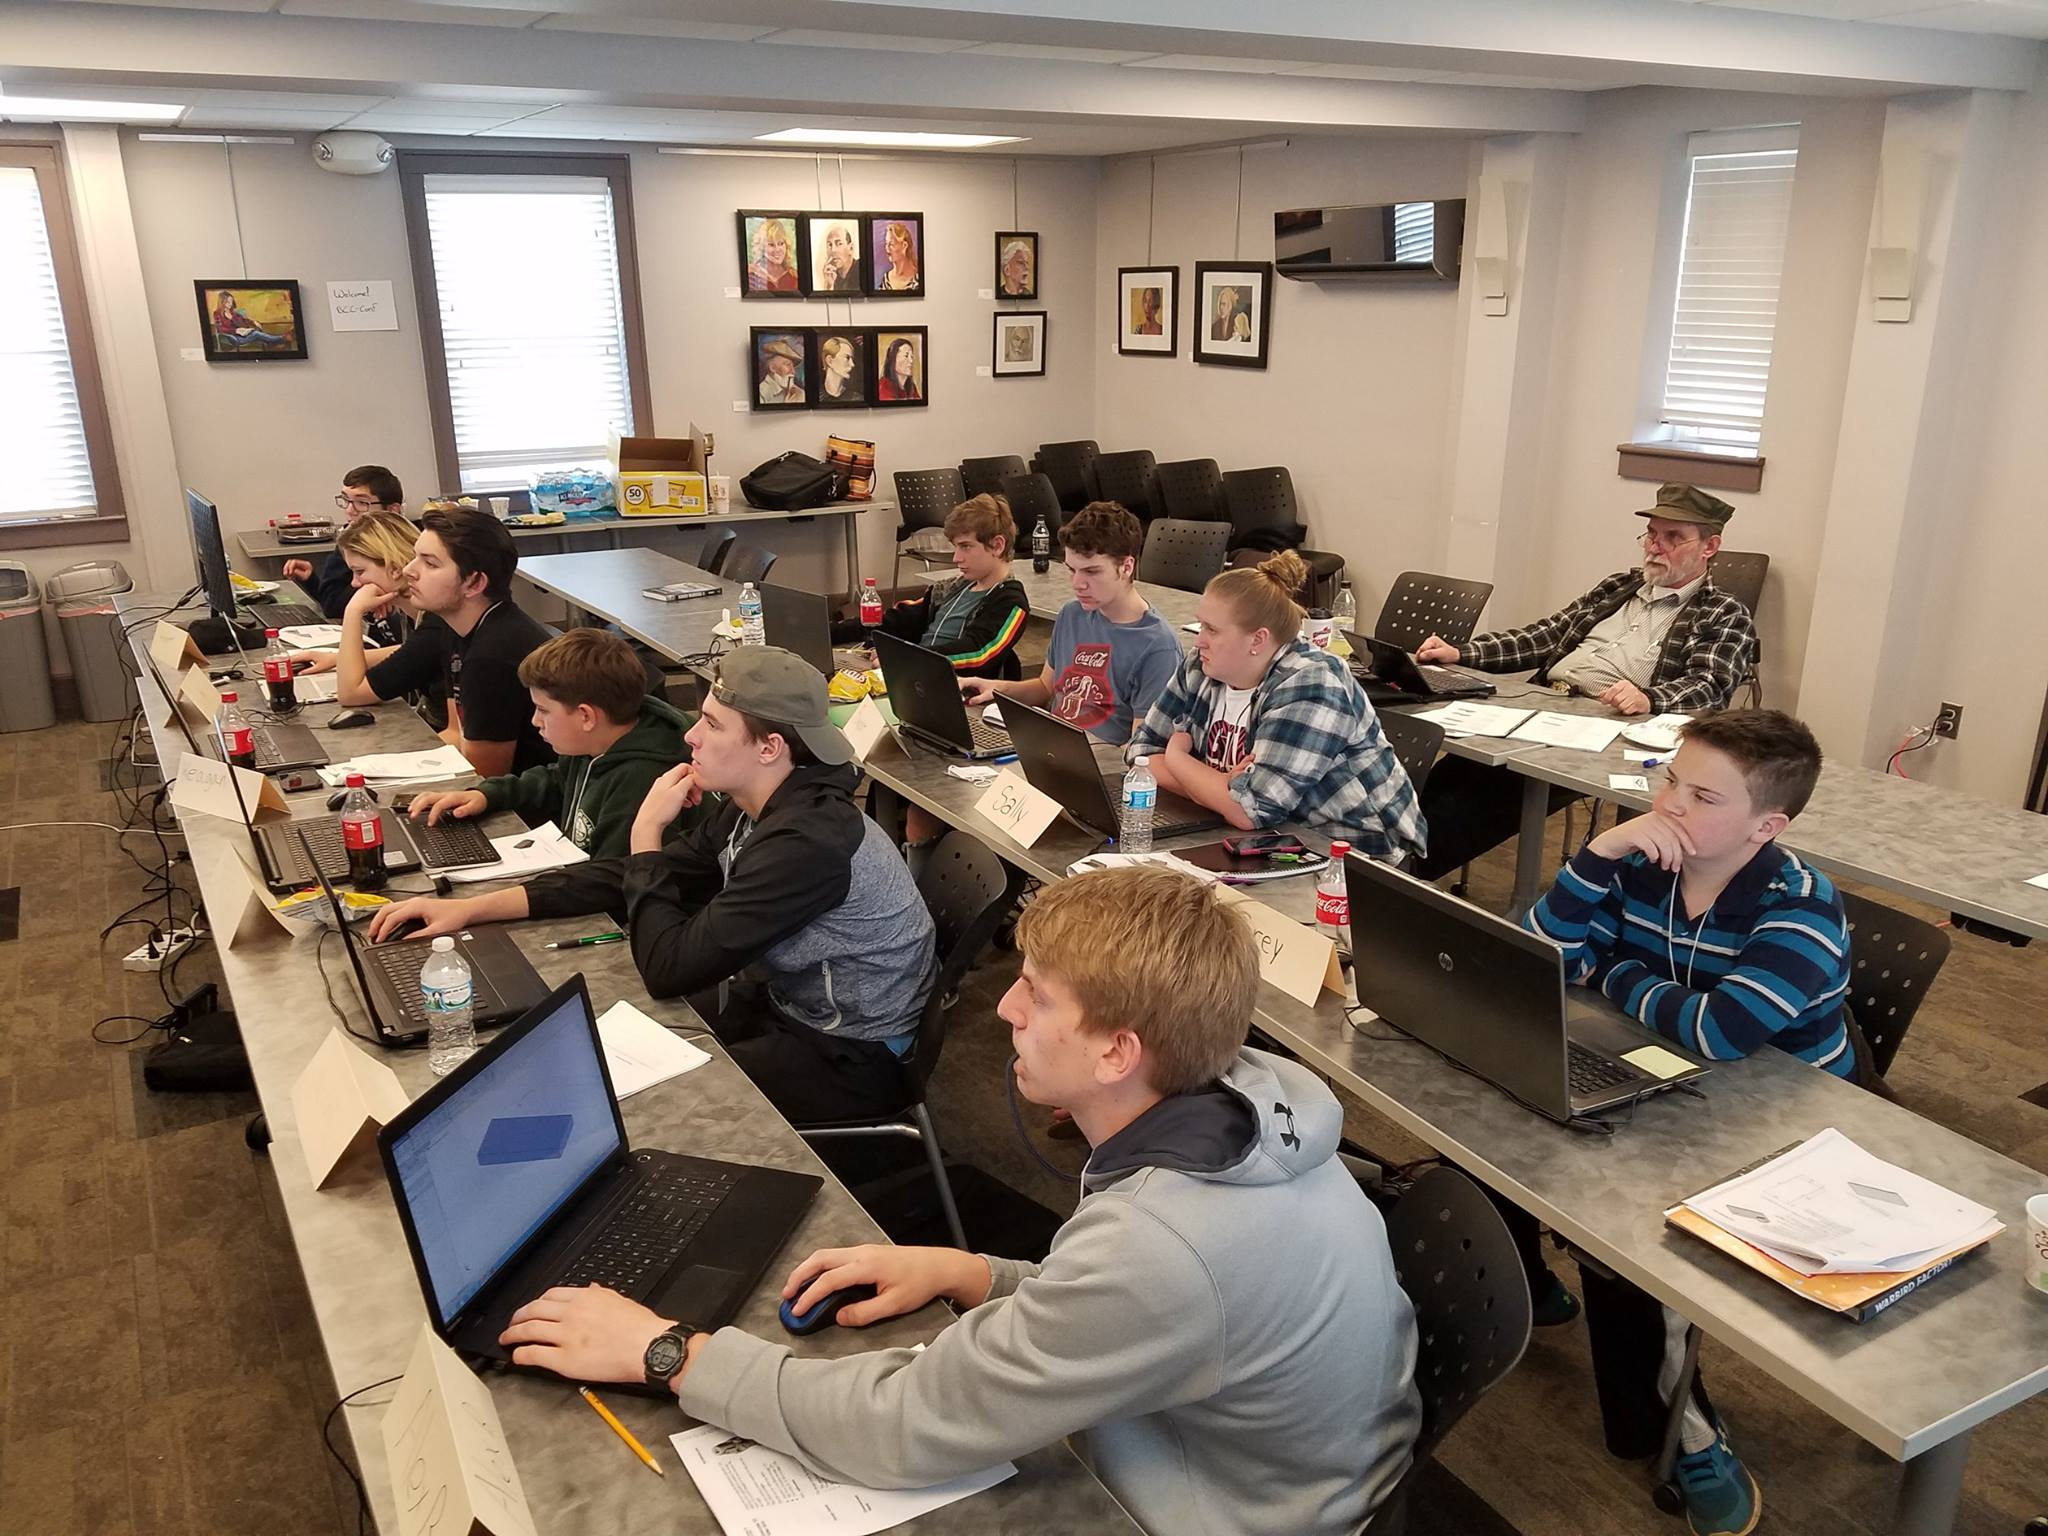 Youth learning SOLIDWORKS through the Warbirds of Glory Museum